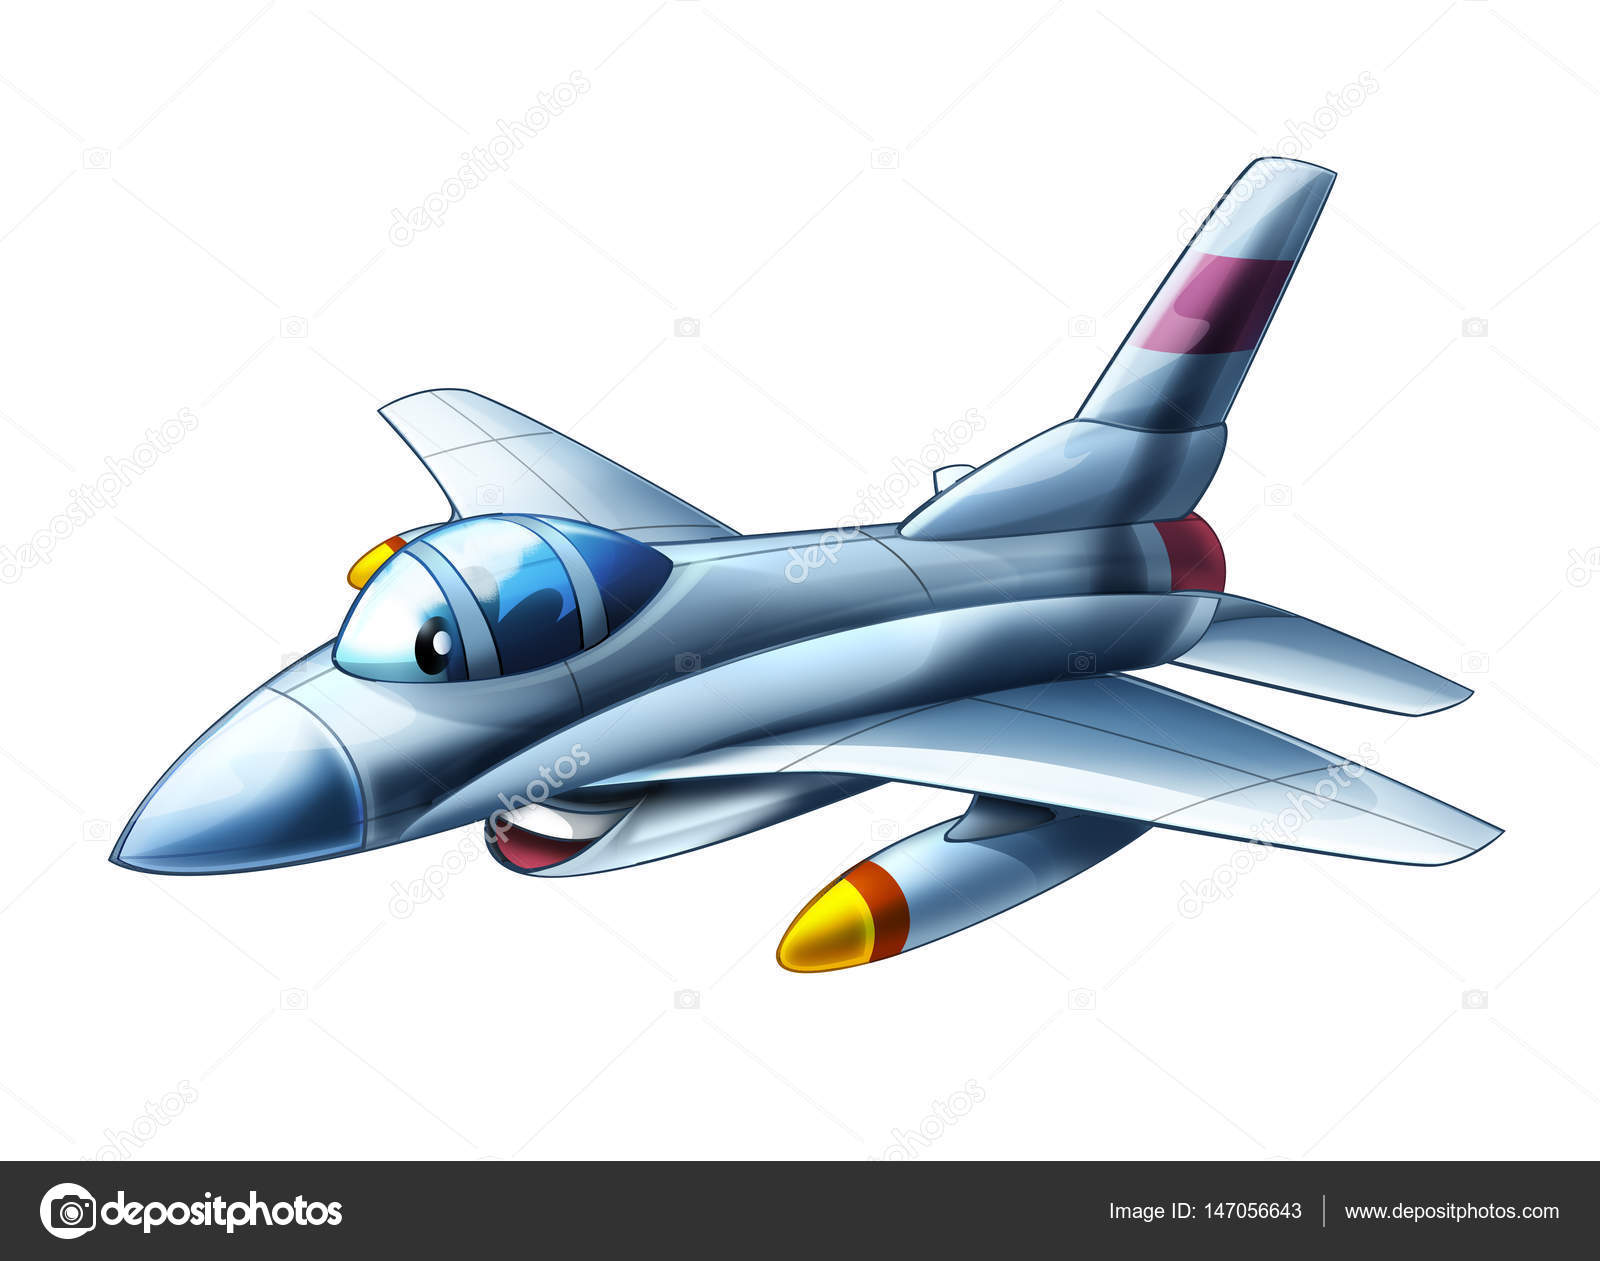 cartoon airplane vector with Jet Cartoon Images on Airplane With Banner Clipart furthermore Big together with Airplane Pilot 8487336 additionally Stock Photos Airplane Plane Airplane Symbol Stylized Airplane Vector Flying Vector Design Image31029273 also Airplane Outline.